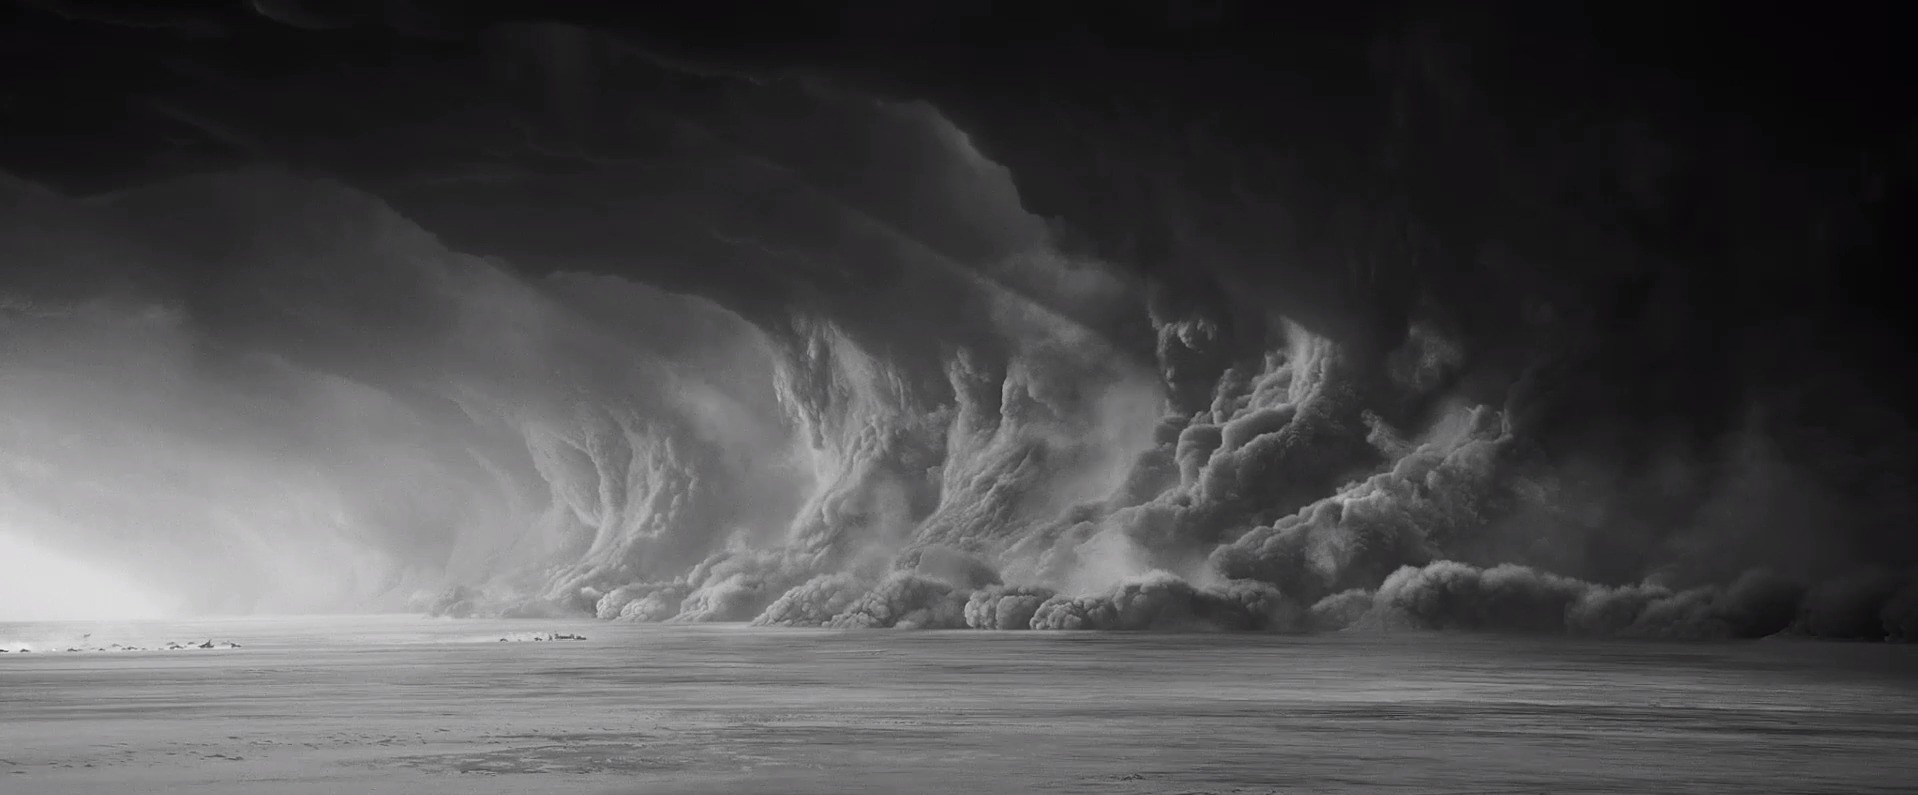 What We Lose With Mad Max: Fury Road Black And Chrome Edition Is The  Retina Scorching Colours, The Burnt Oranges And Screaming Blues, The  Oversaturated ...